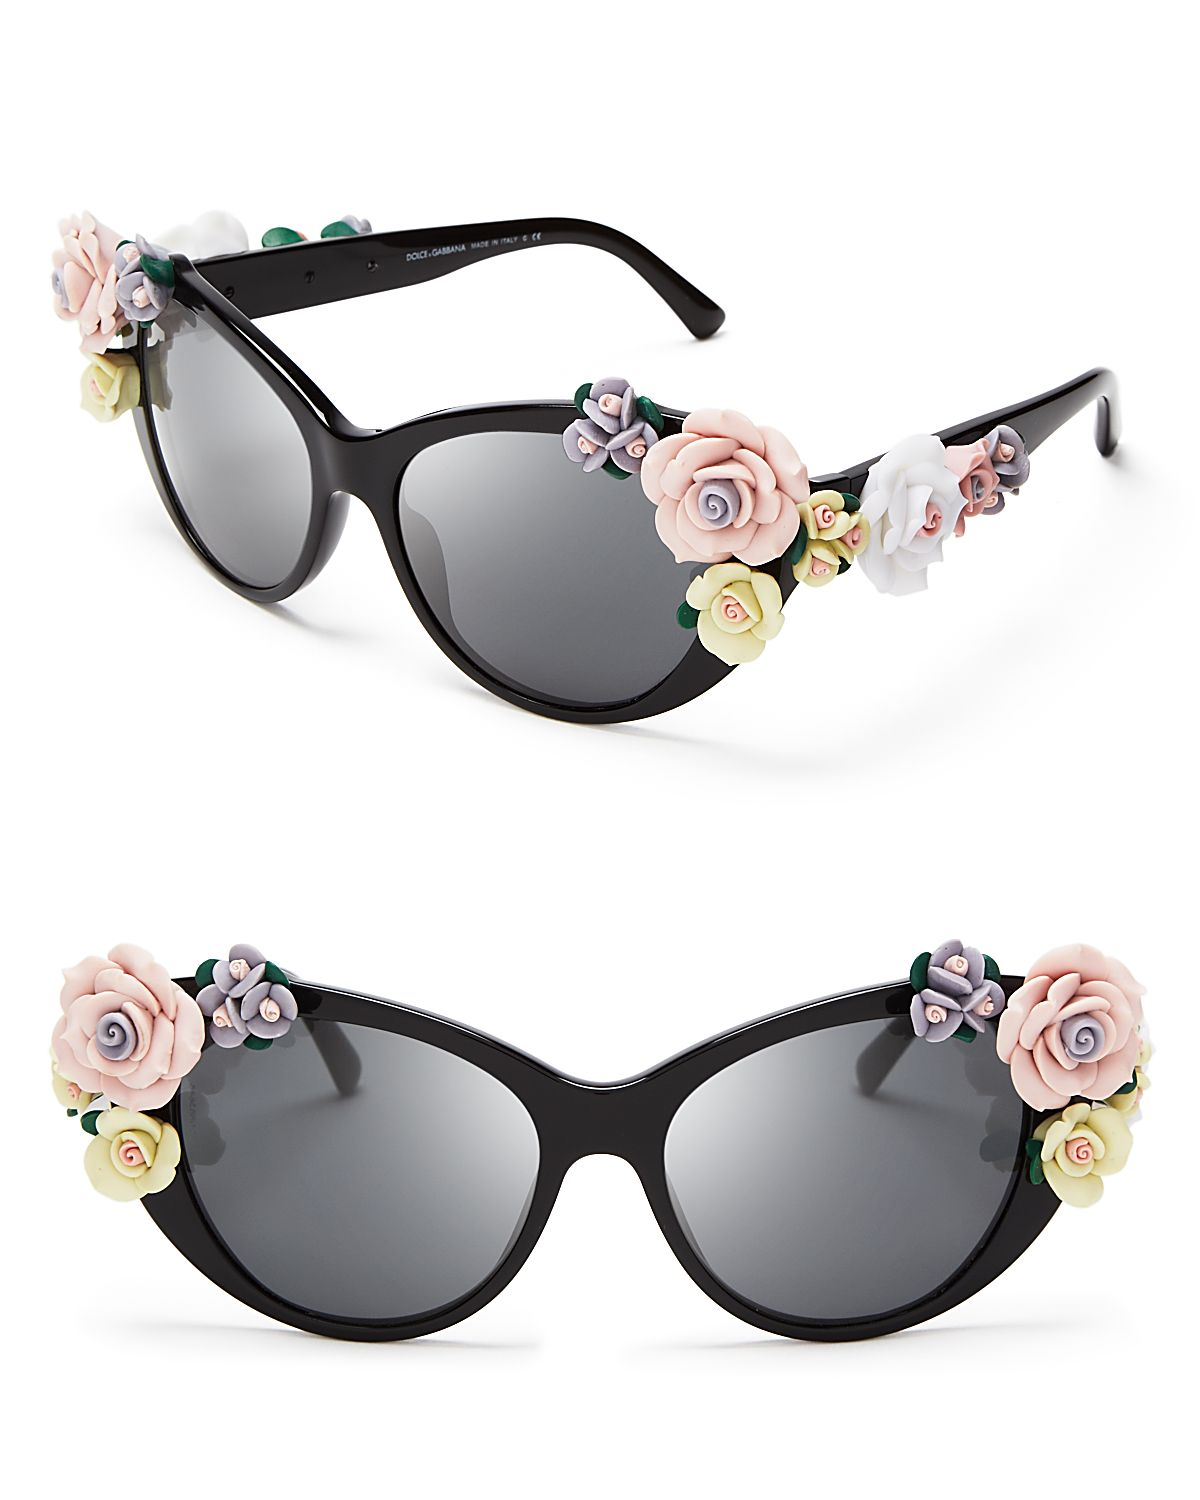 lyst dolce gabbana oversized floral cat eye sunglasses in black. Black Bedroom Furniture Sets. Home Design Ideas